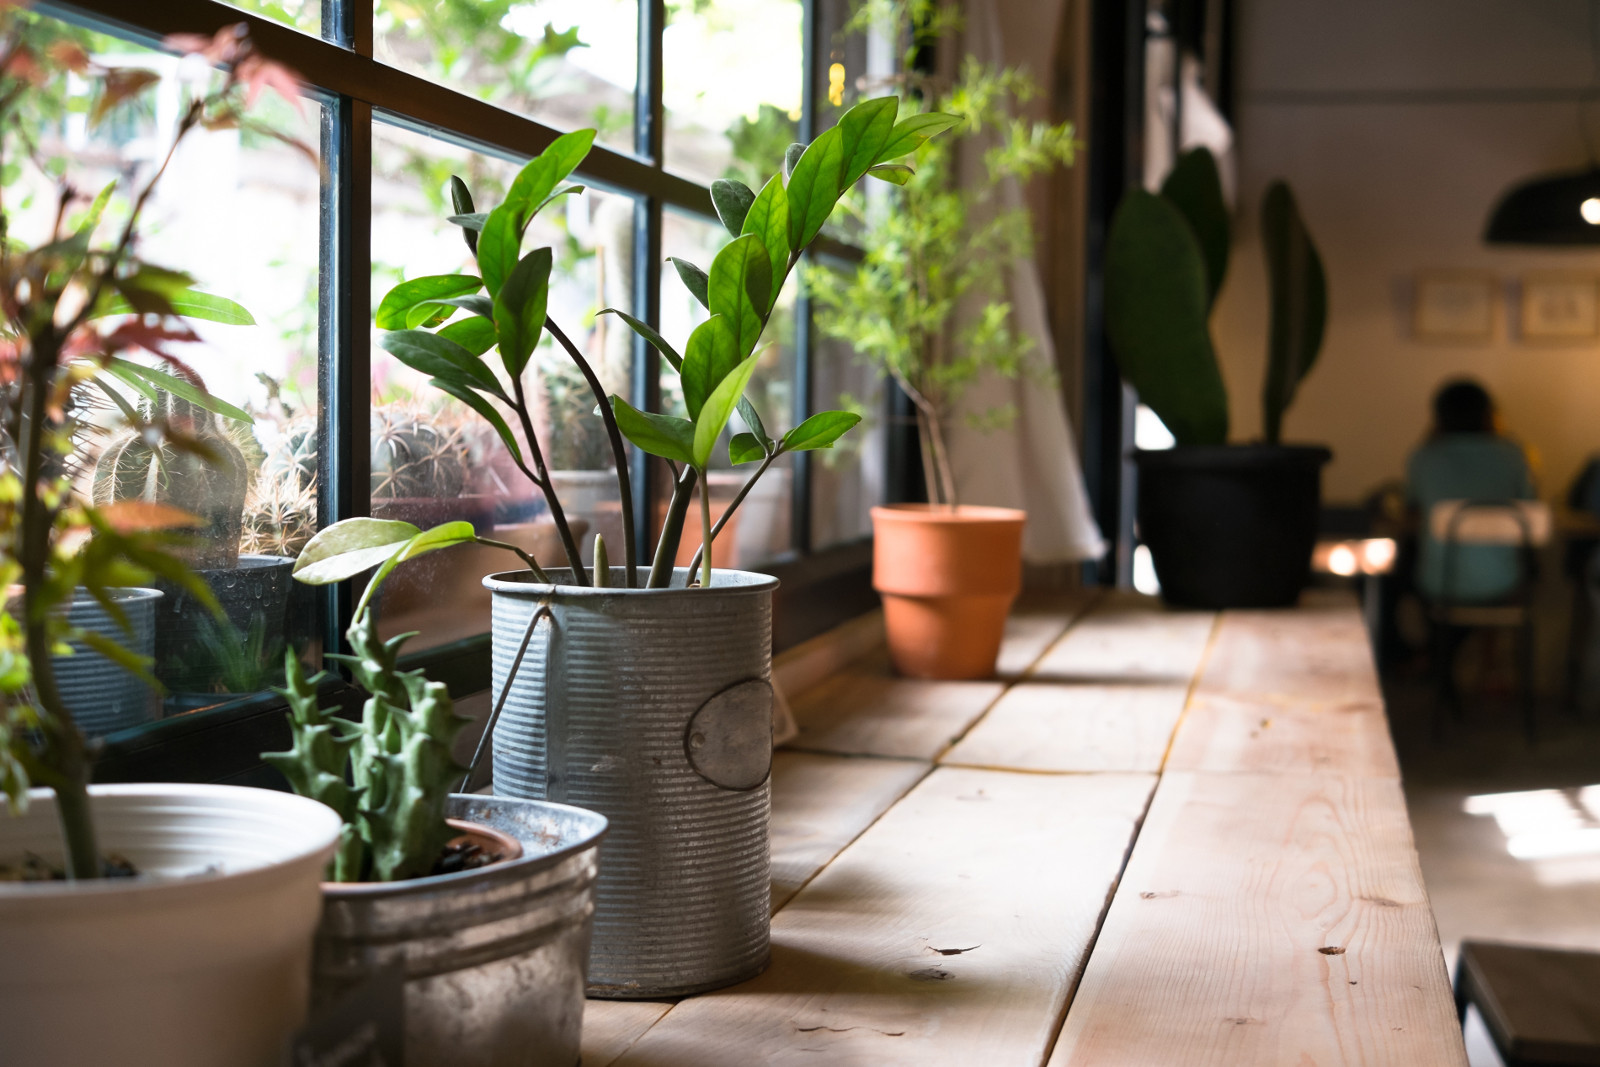 Healthy home interior with plants and view to outside through window